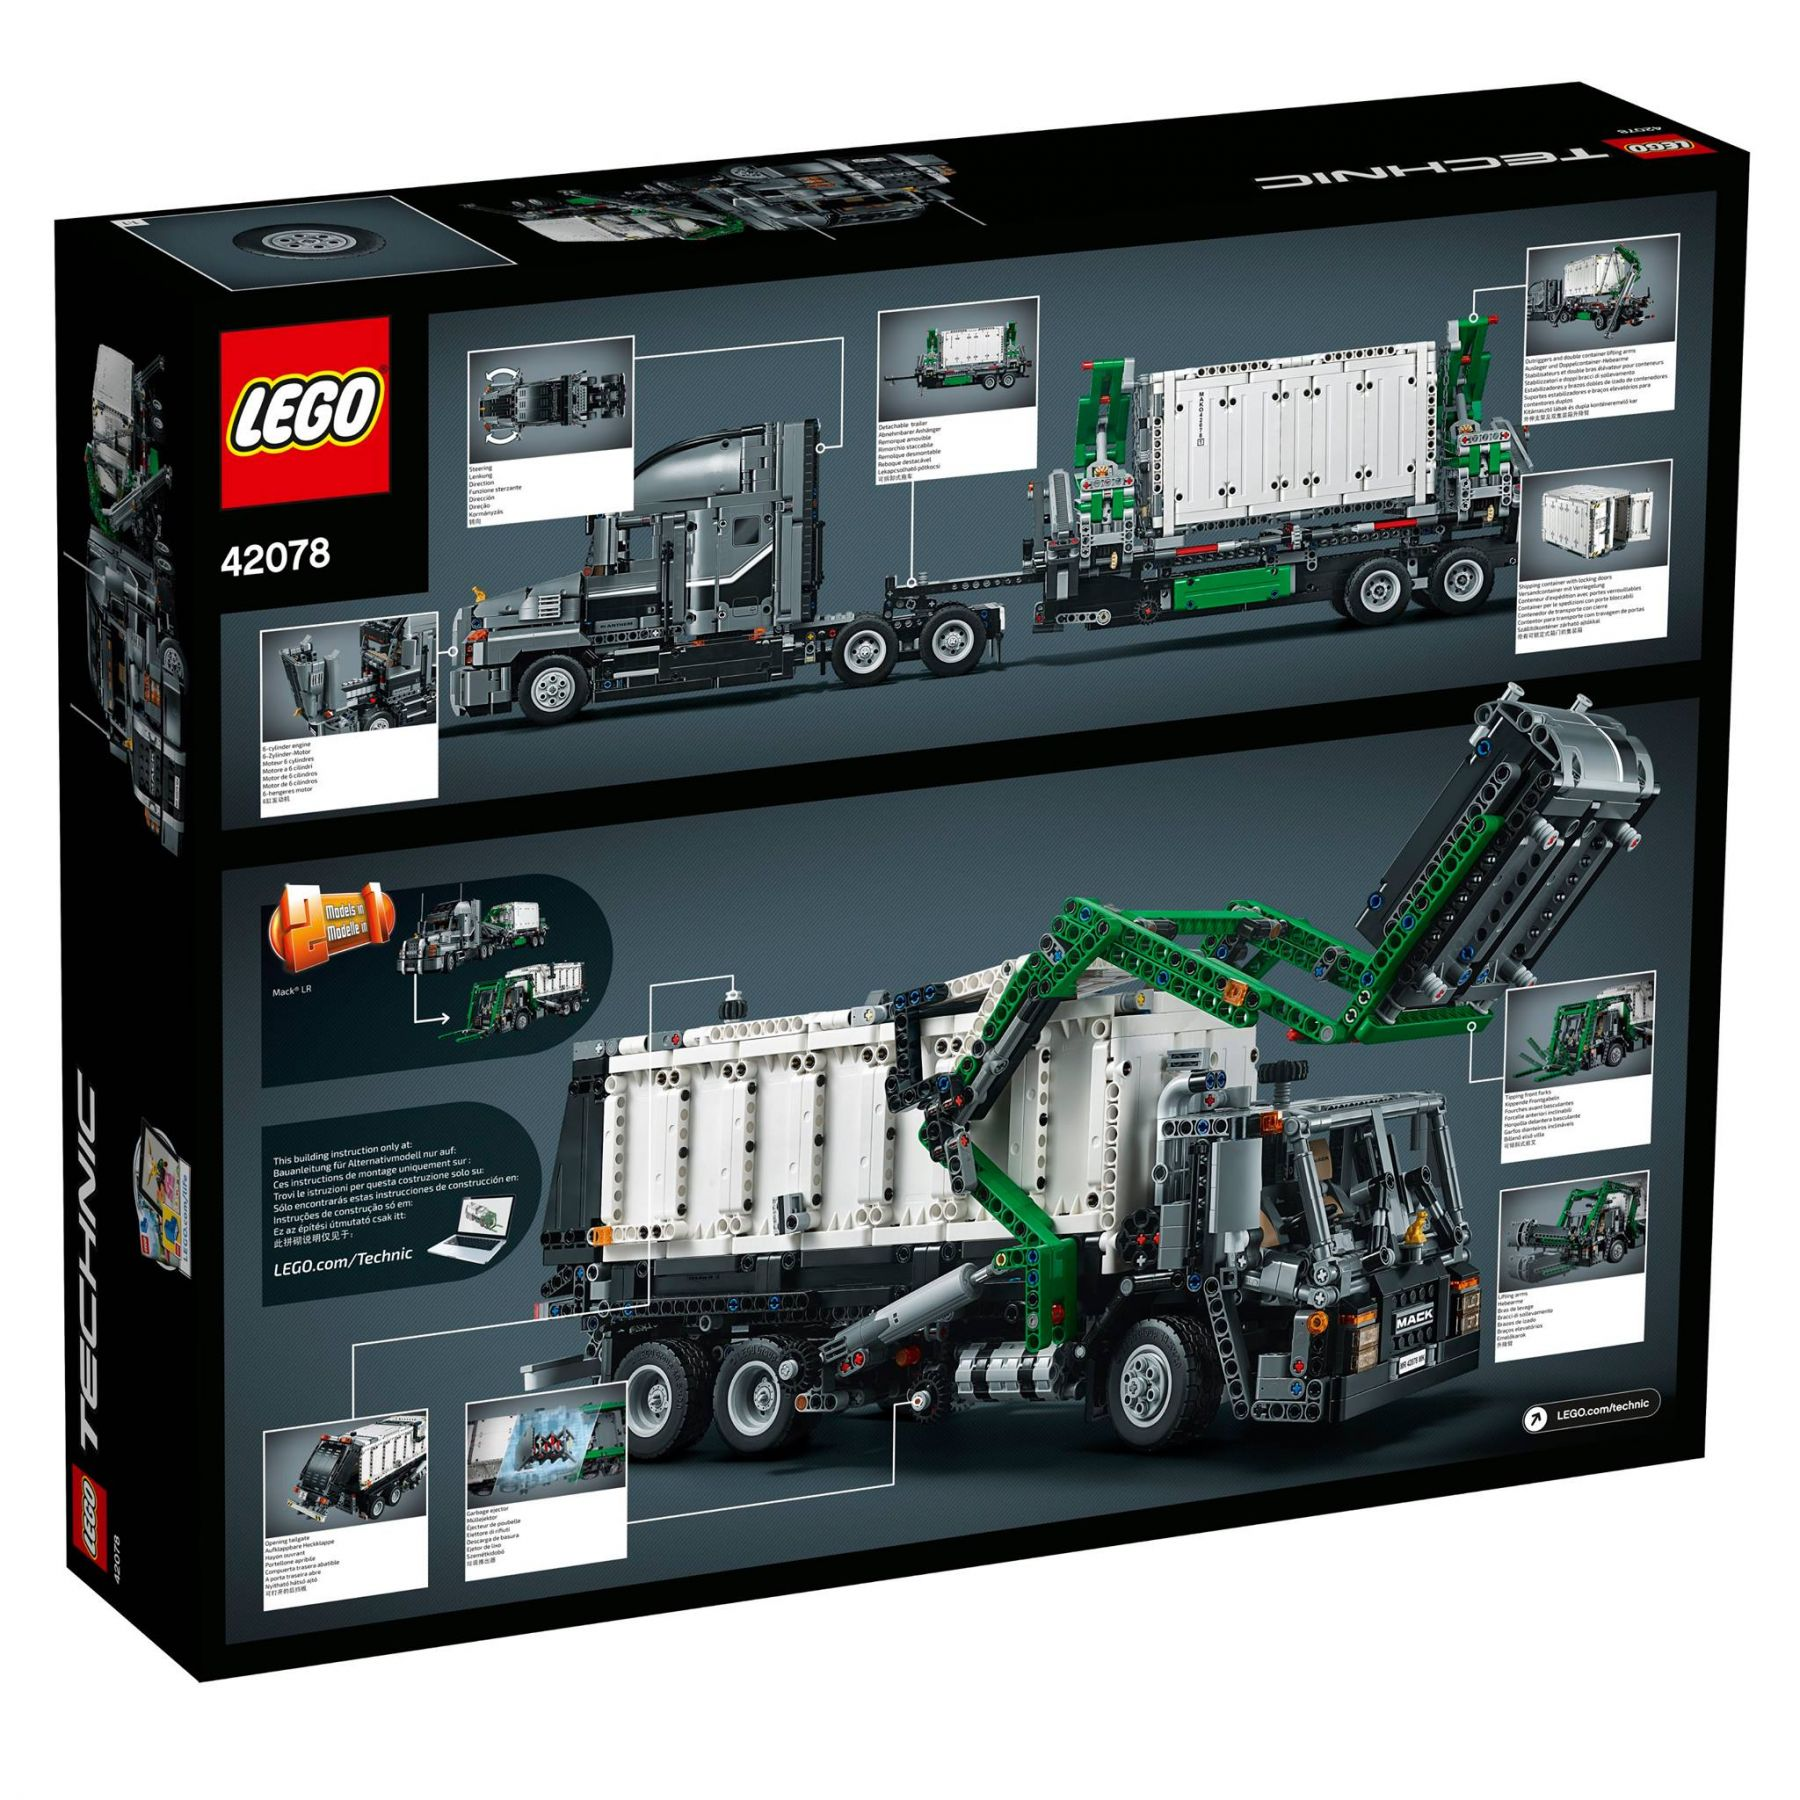 LEGO Technic 42078 Mack Anthem lego-technic-42078-1_mack-anthem_03.jpg